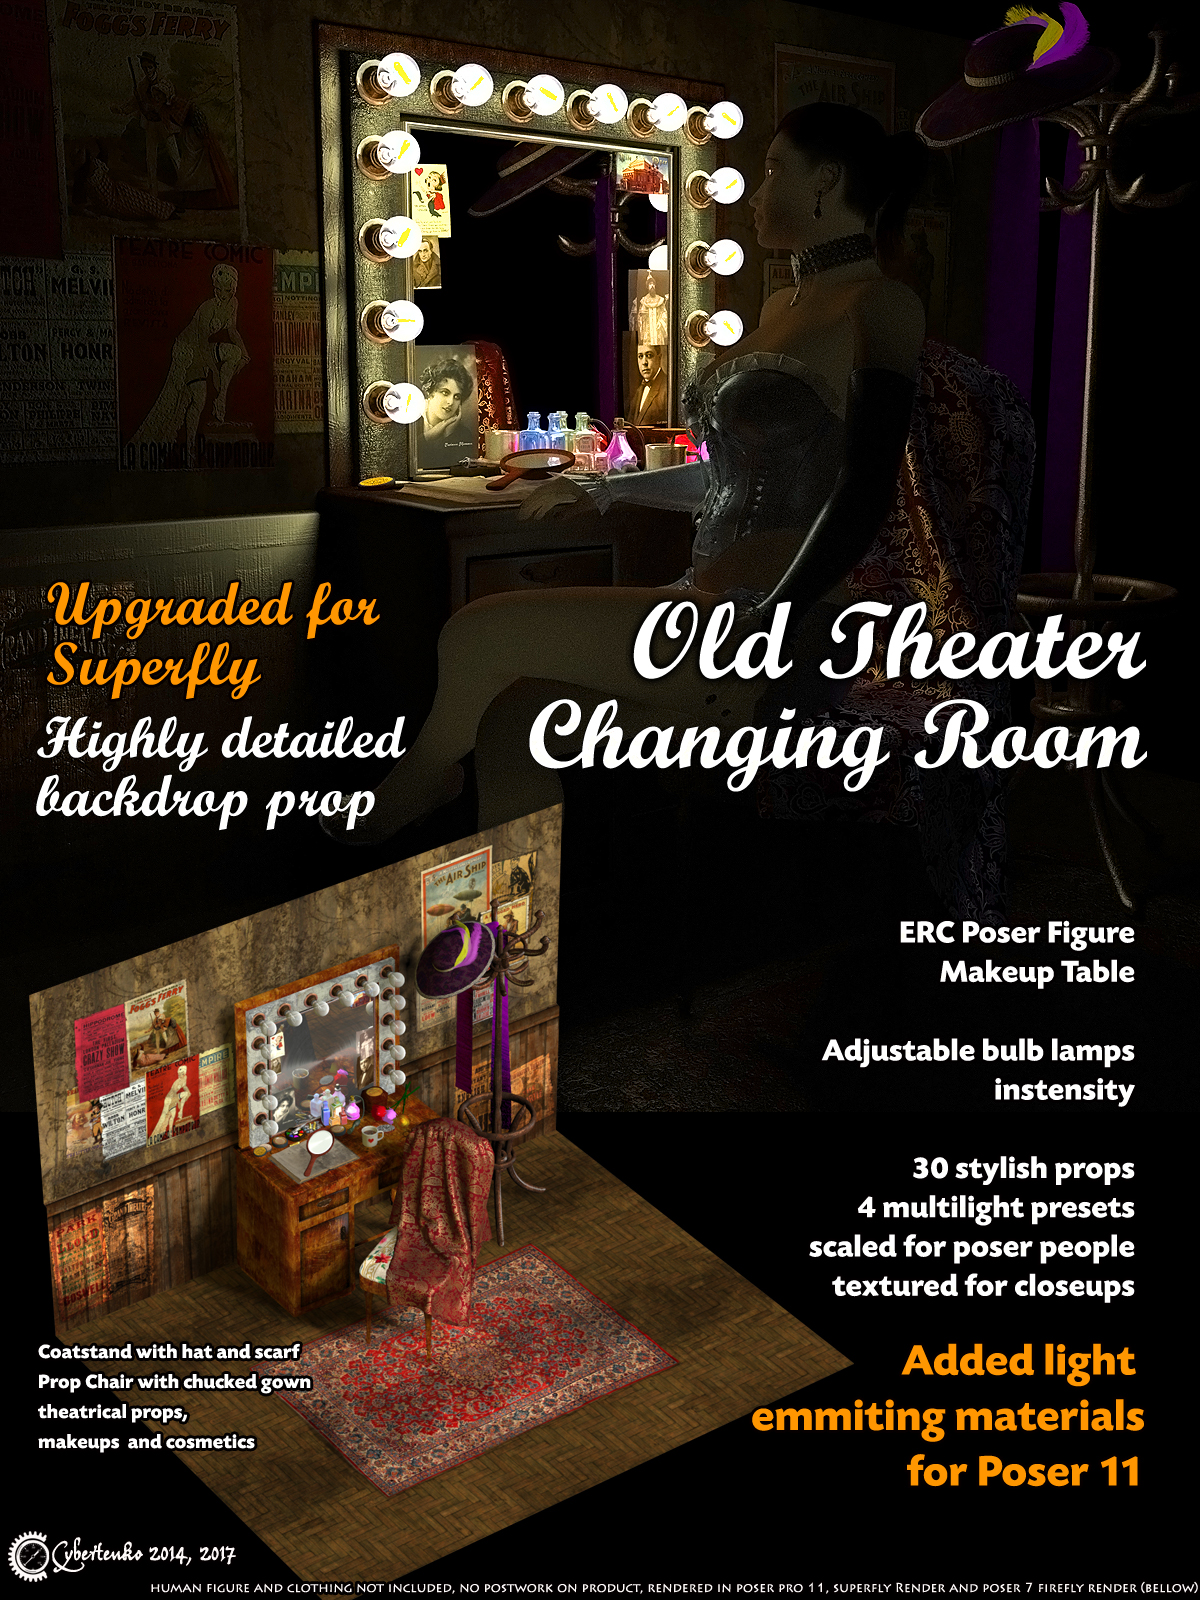 Old Theater Changing Room